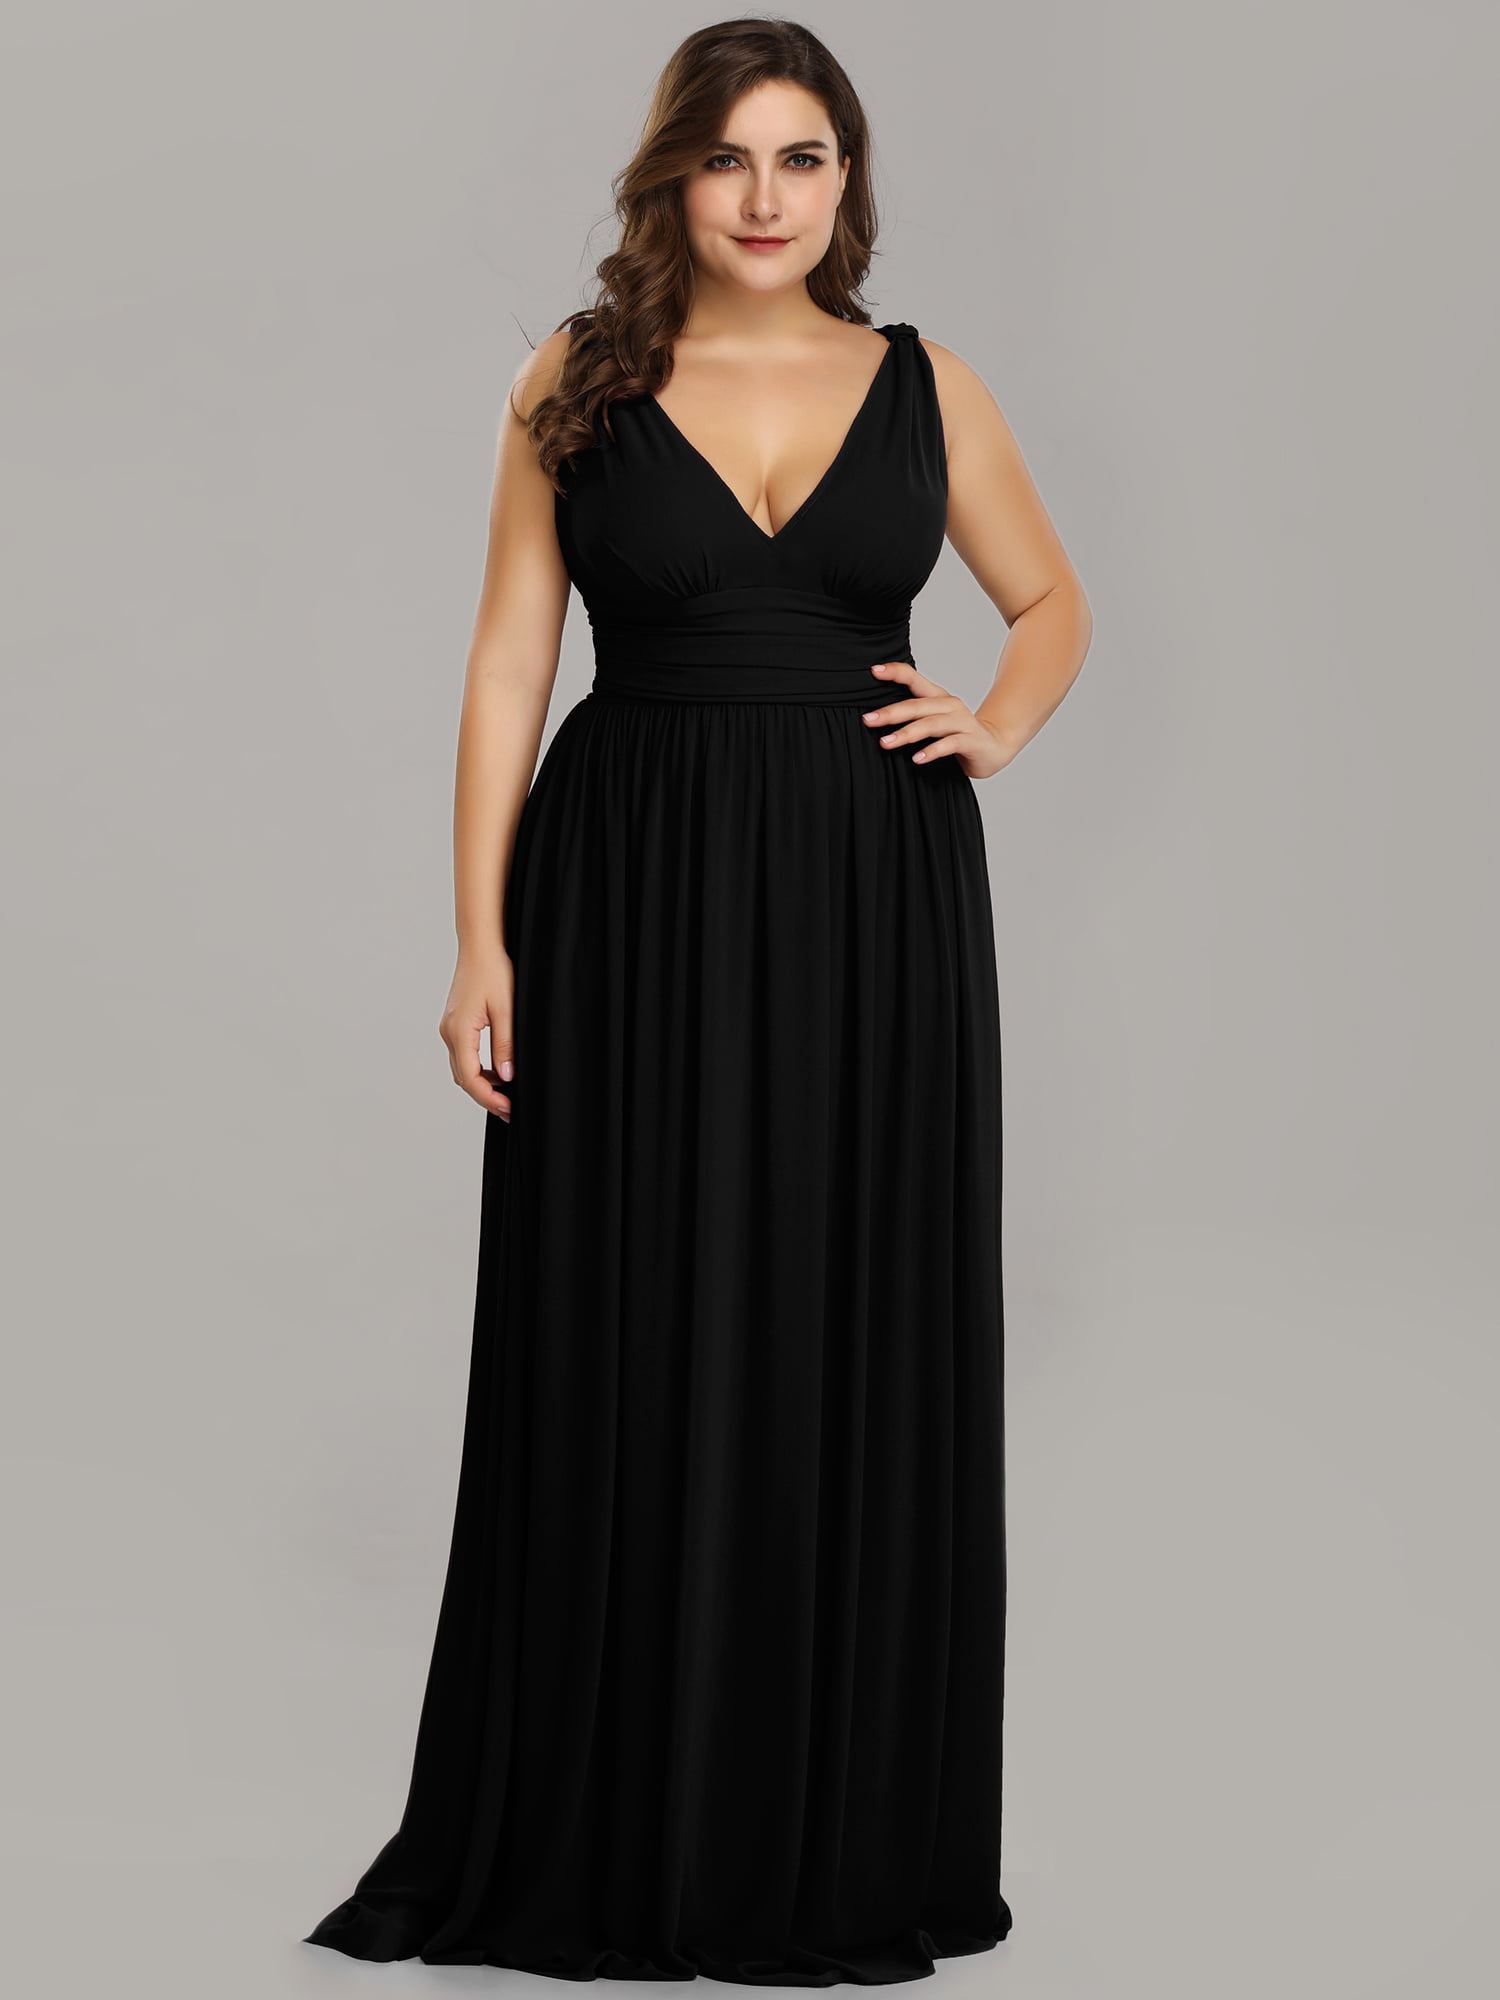 Kaylee Evening Dress